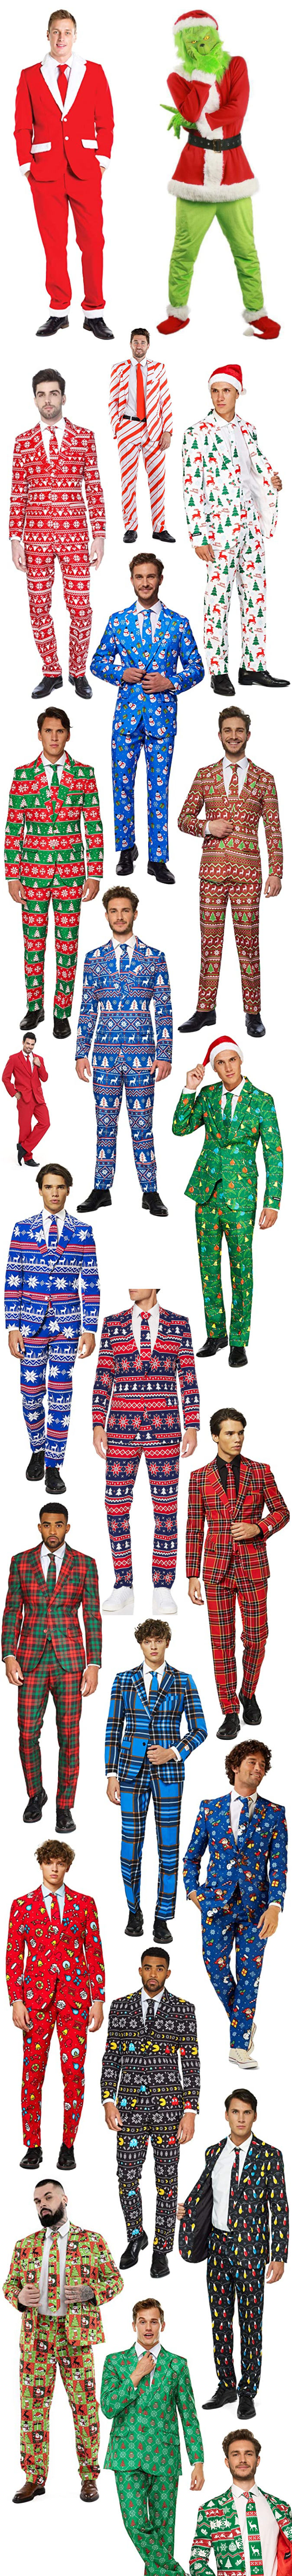 THE BEST CHRISTMAS SUITS TO BUY 2020